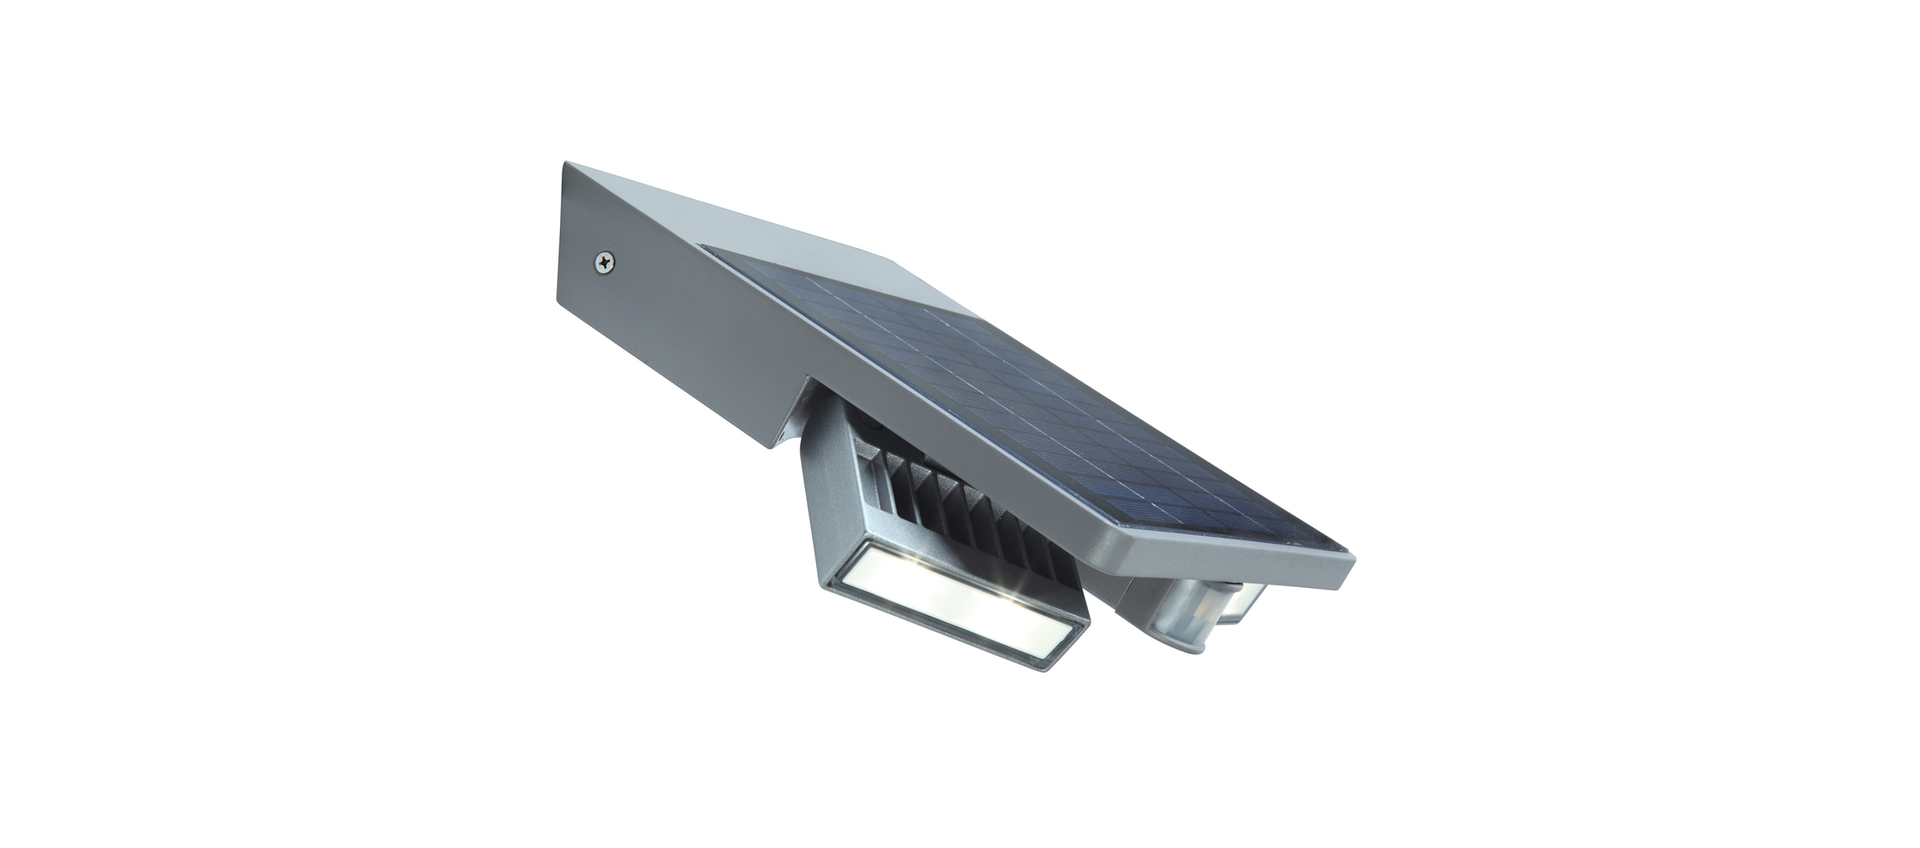 Outdoor solar lamp with Lutec TILLY motion sensor